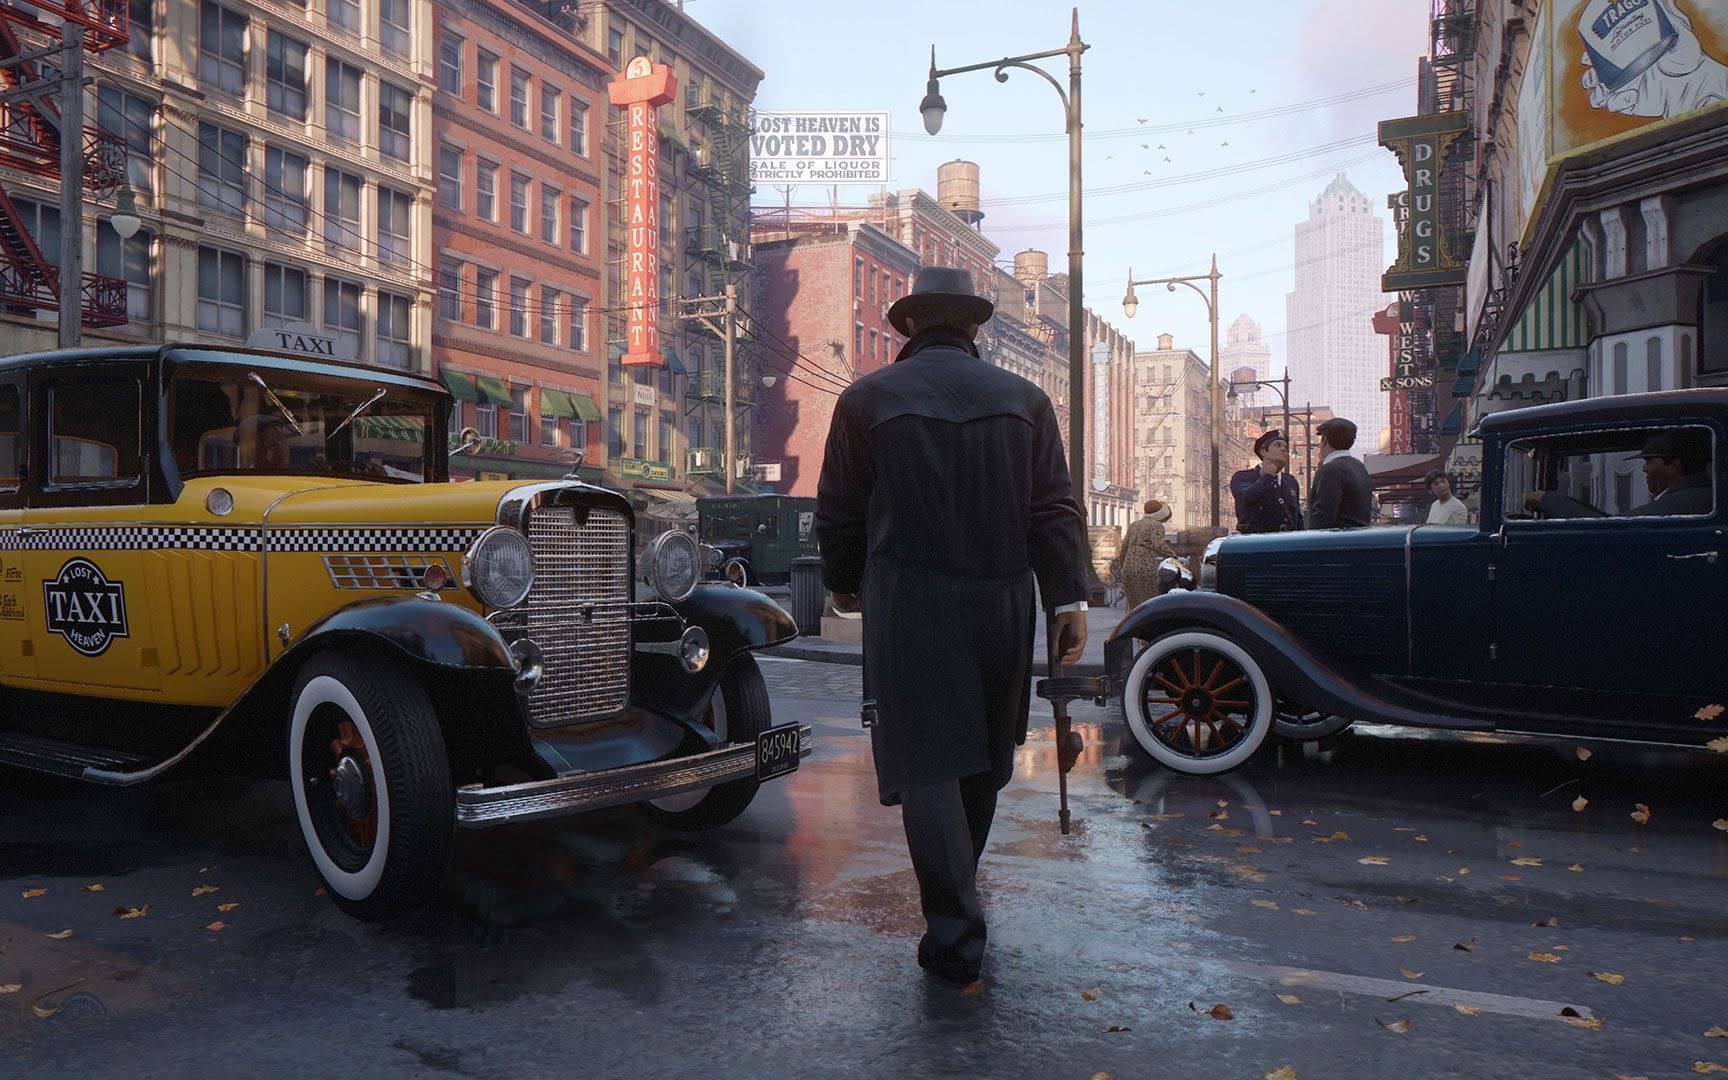 Mafia: Definitive Edition' is delayed until September due to COVID-19 |  Engadget